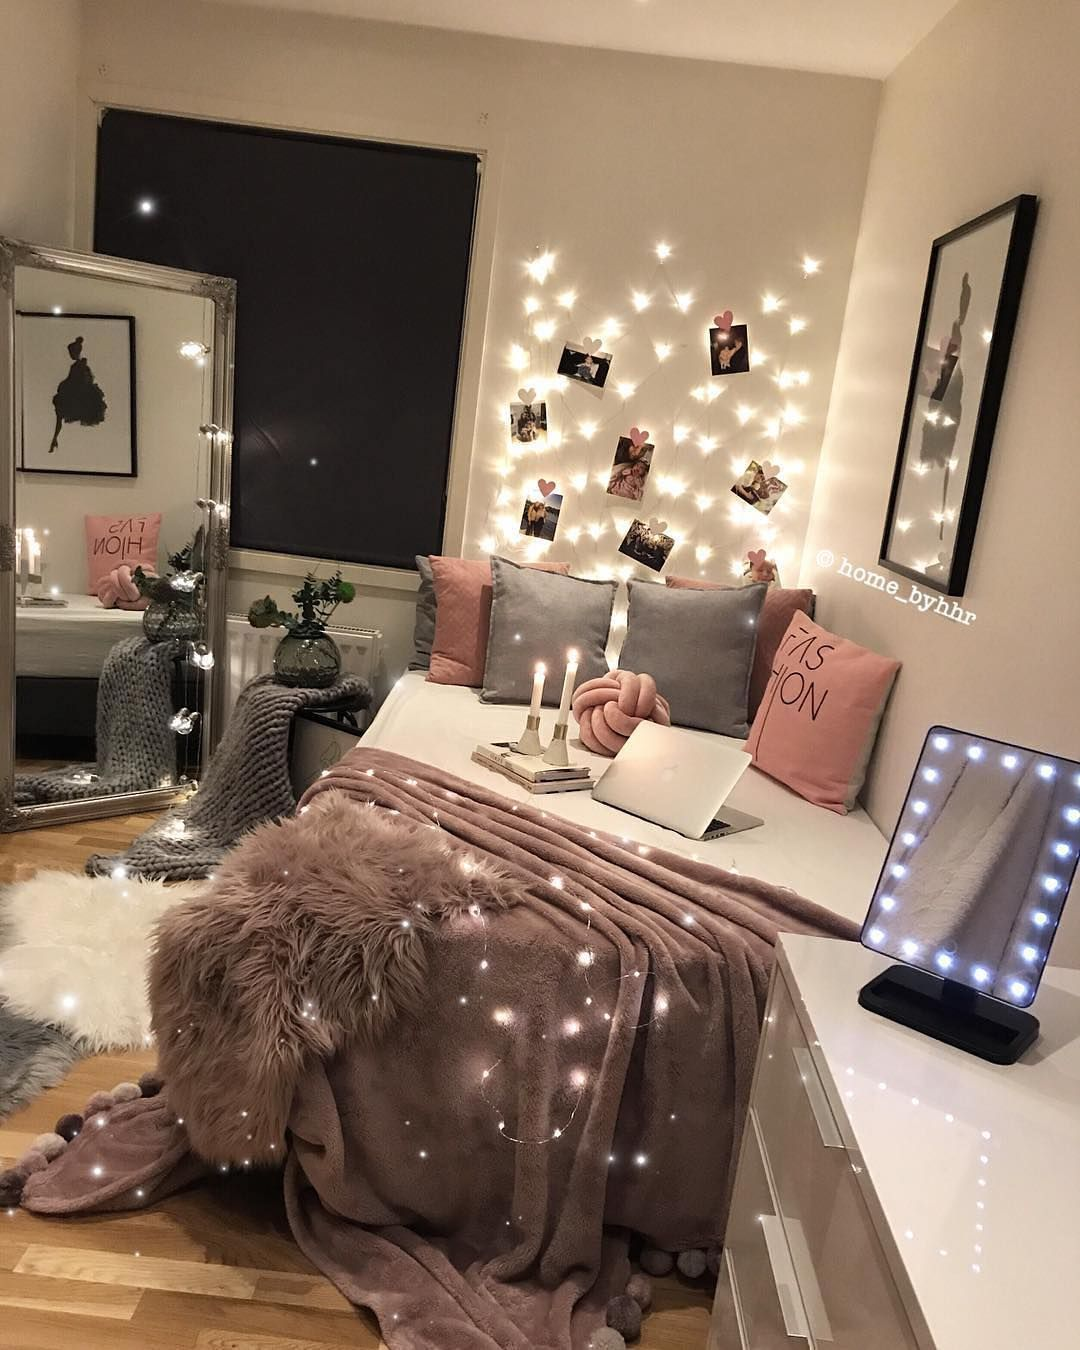 fun and cool teen bedroom ideas home decor and organization